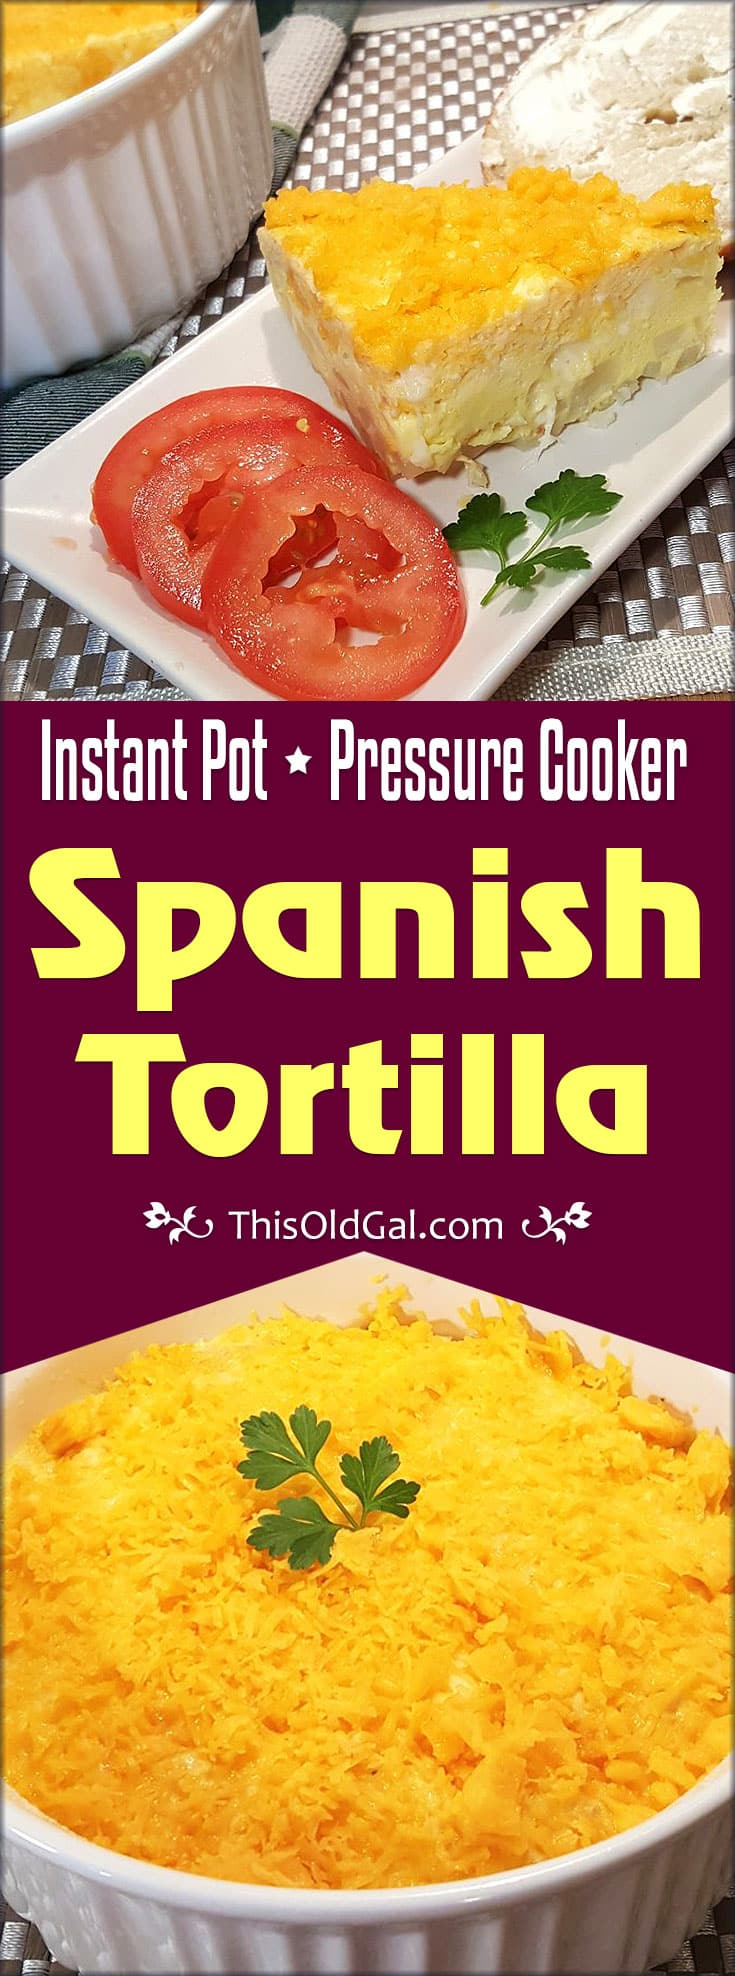 Pressure Cooker Spanish Tortilla (Potato Egg Frittata)